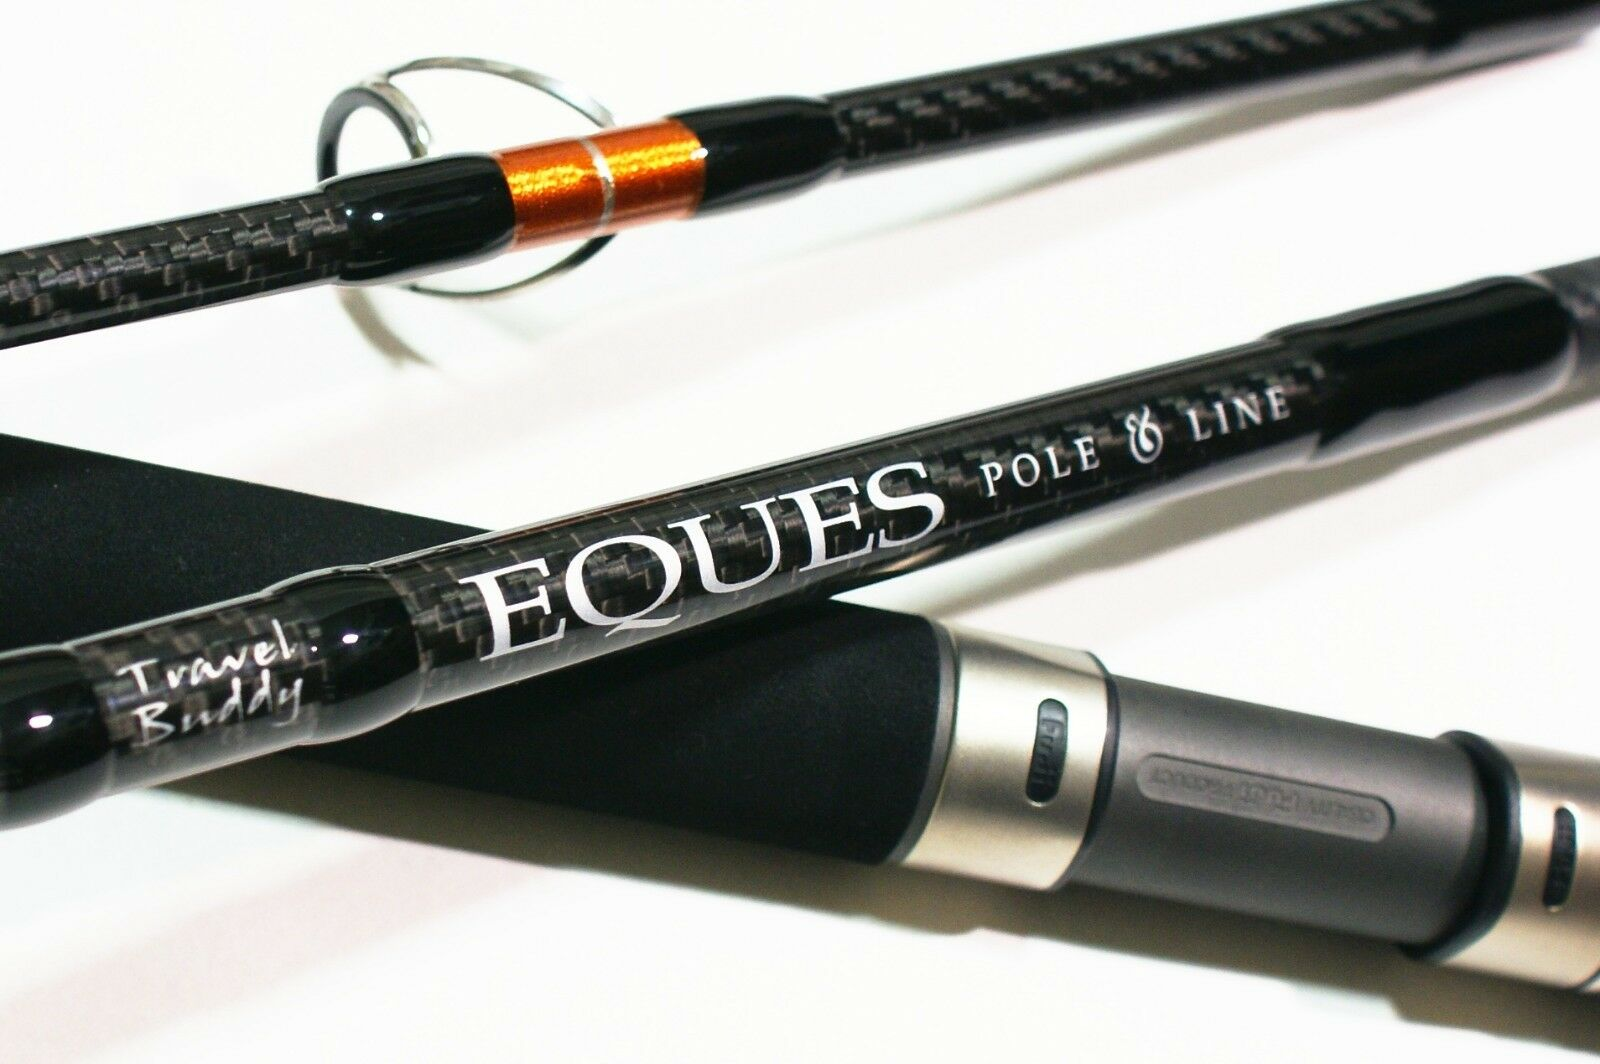 POLE&LINE EQUES Catfish GT rod 9ft 3pcs 200g